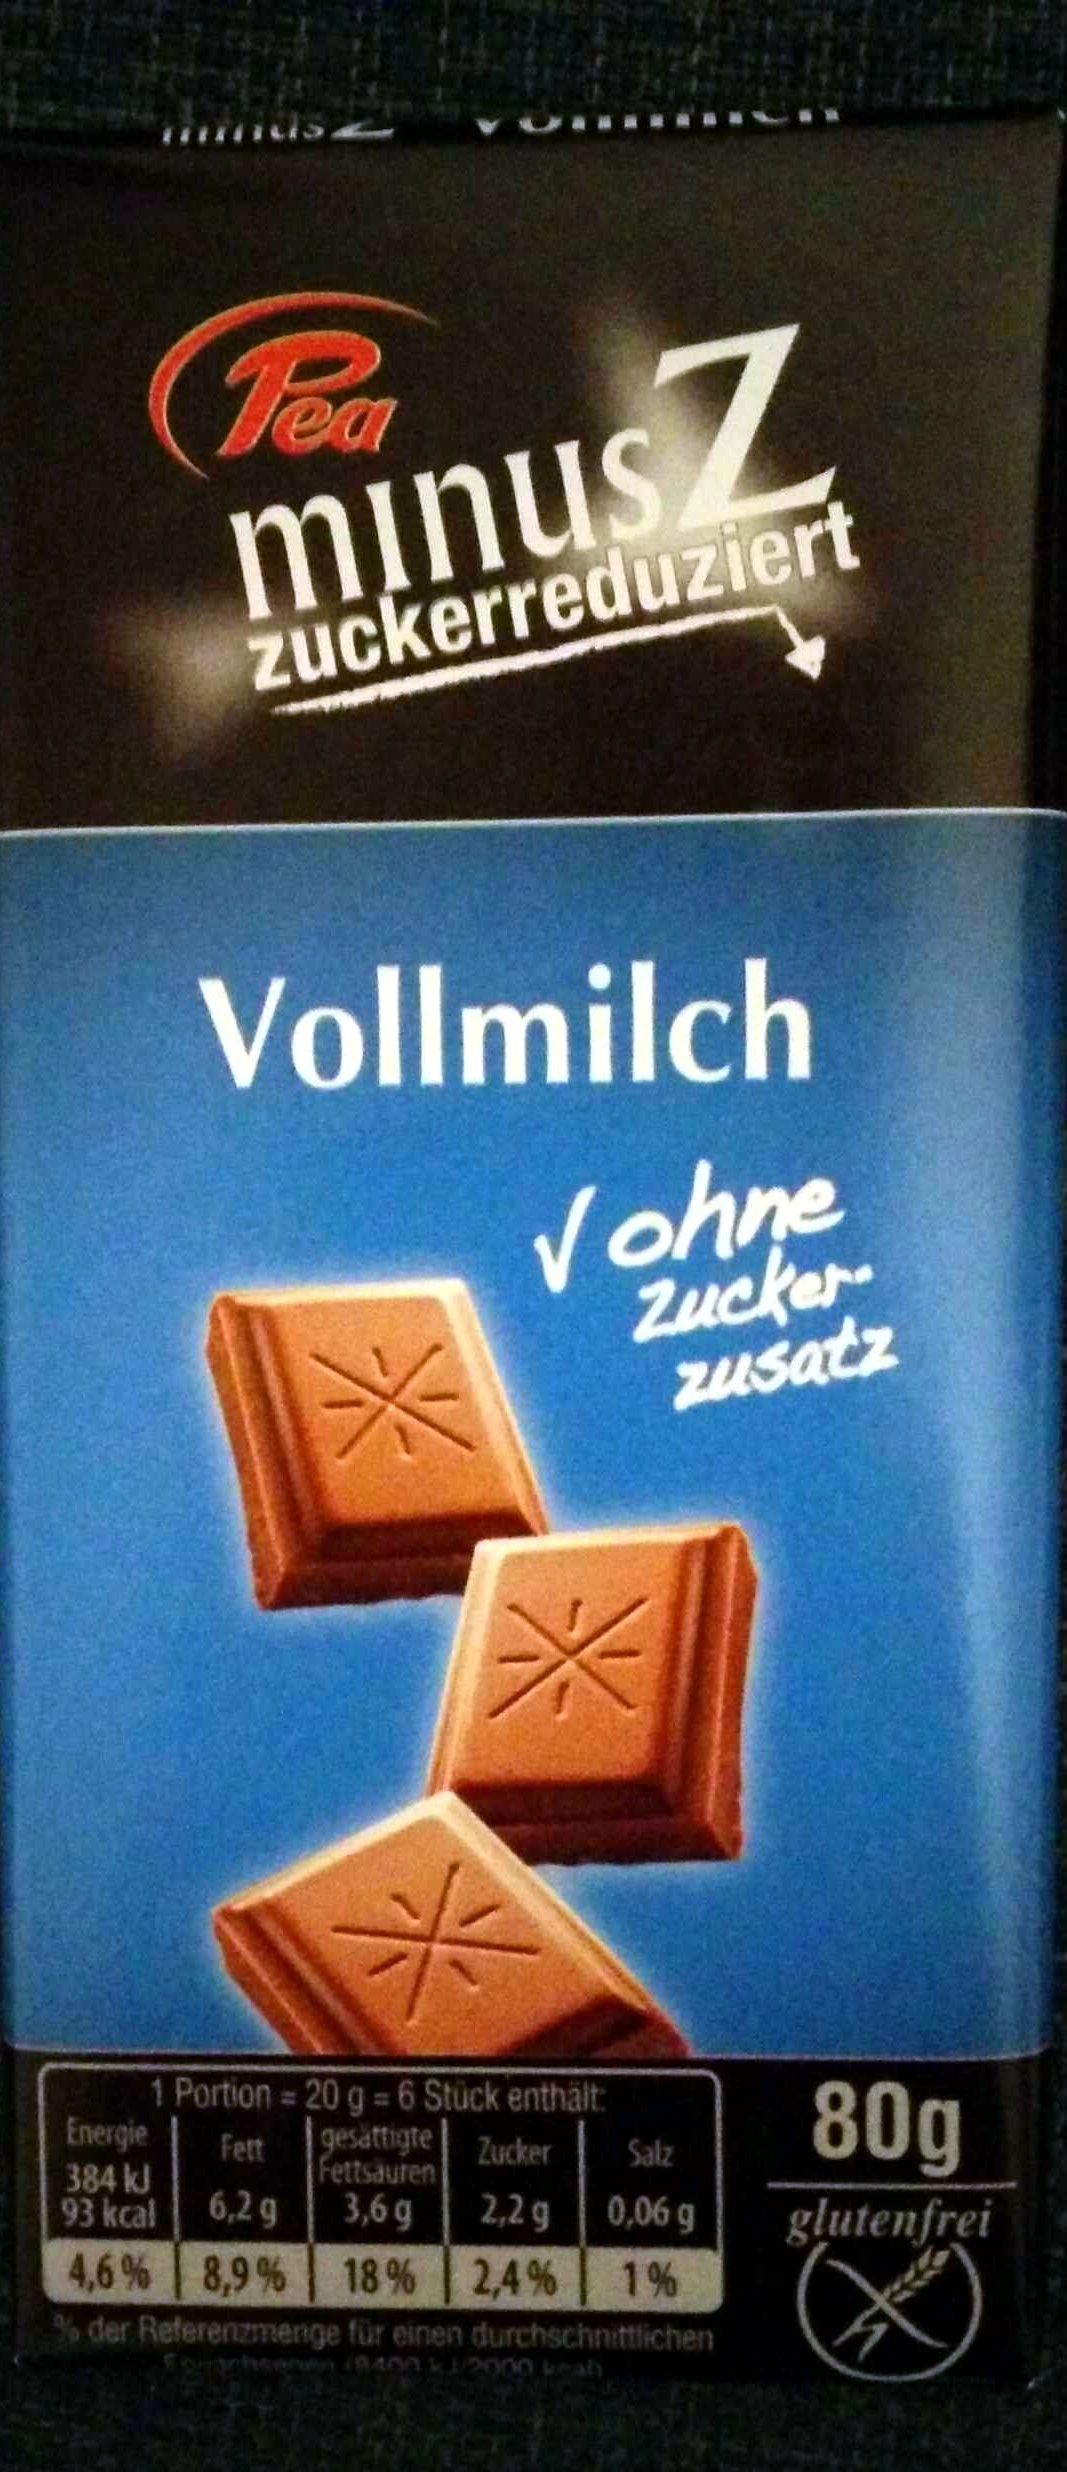 Vollmilch - Product - de